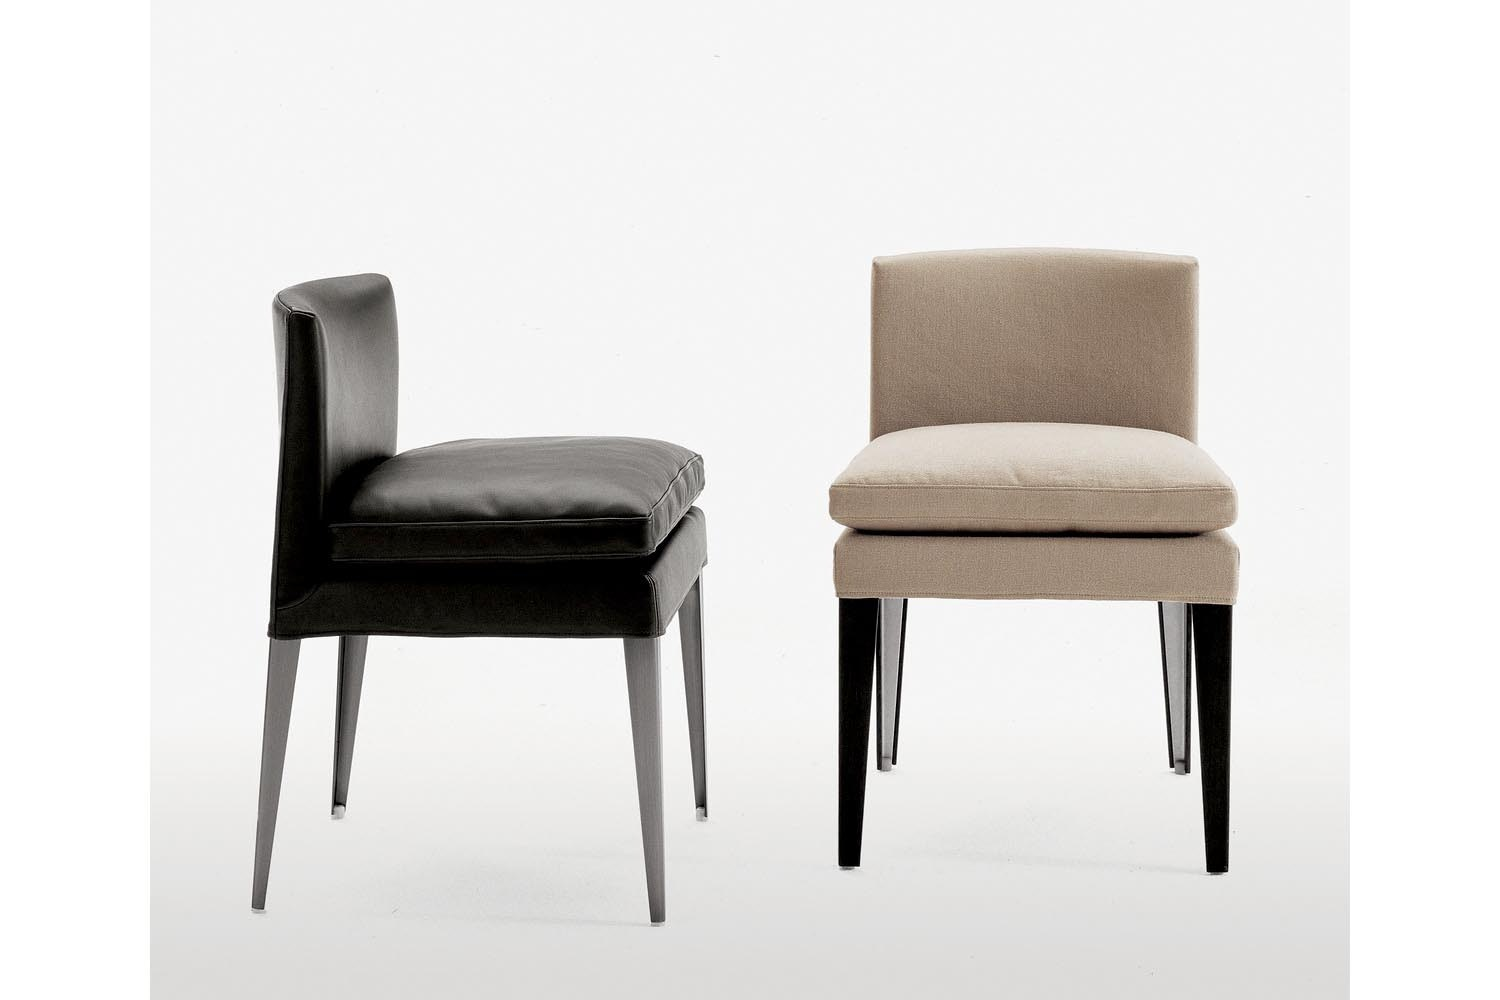 Eunice Chair by Antonio Citterio for Maxalto